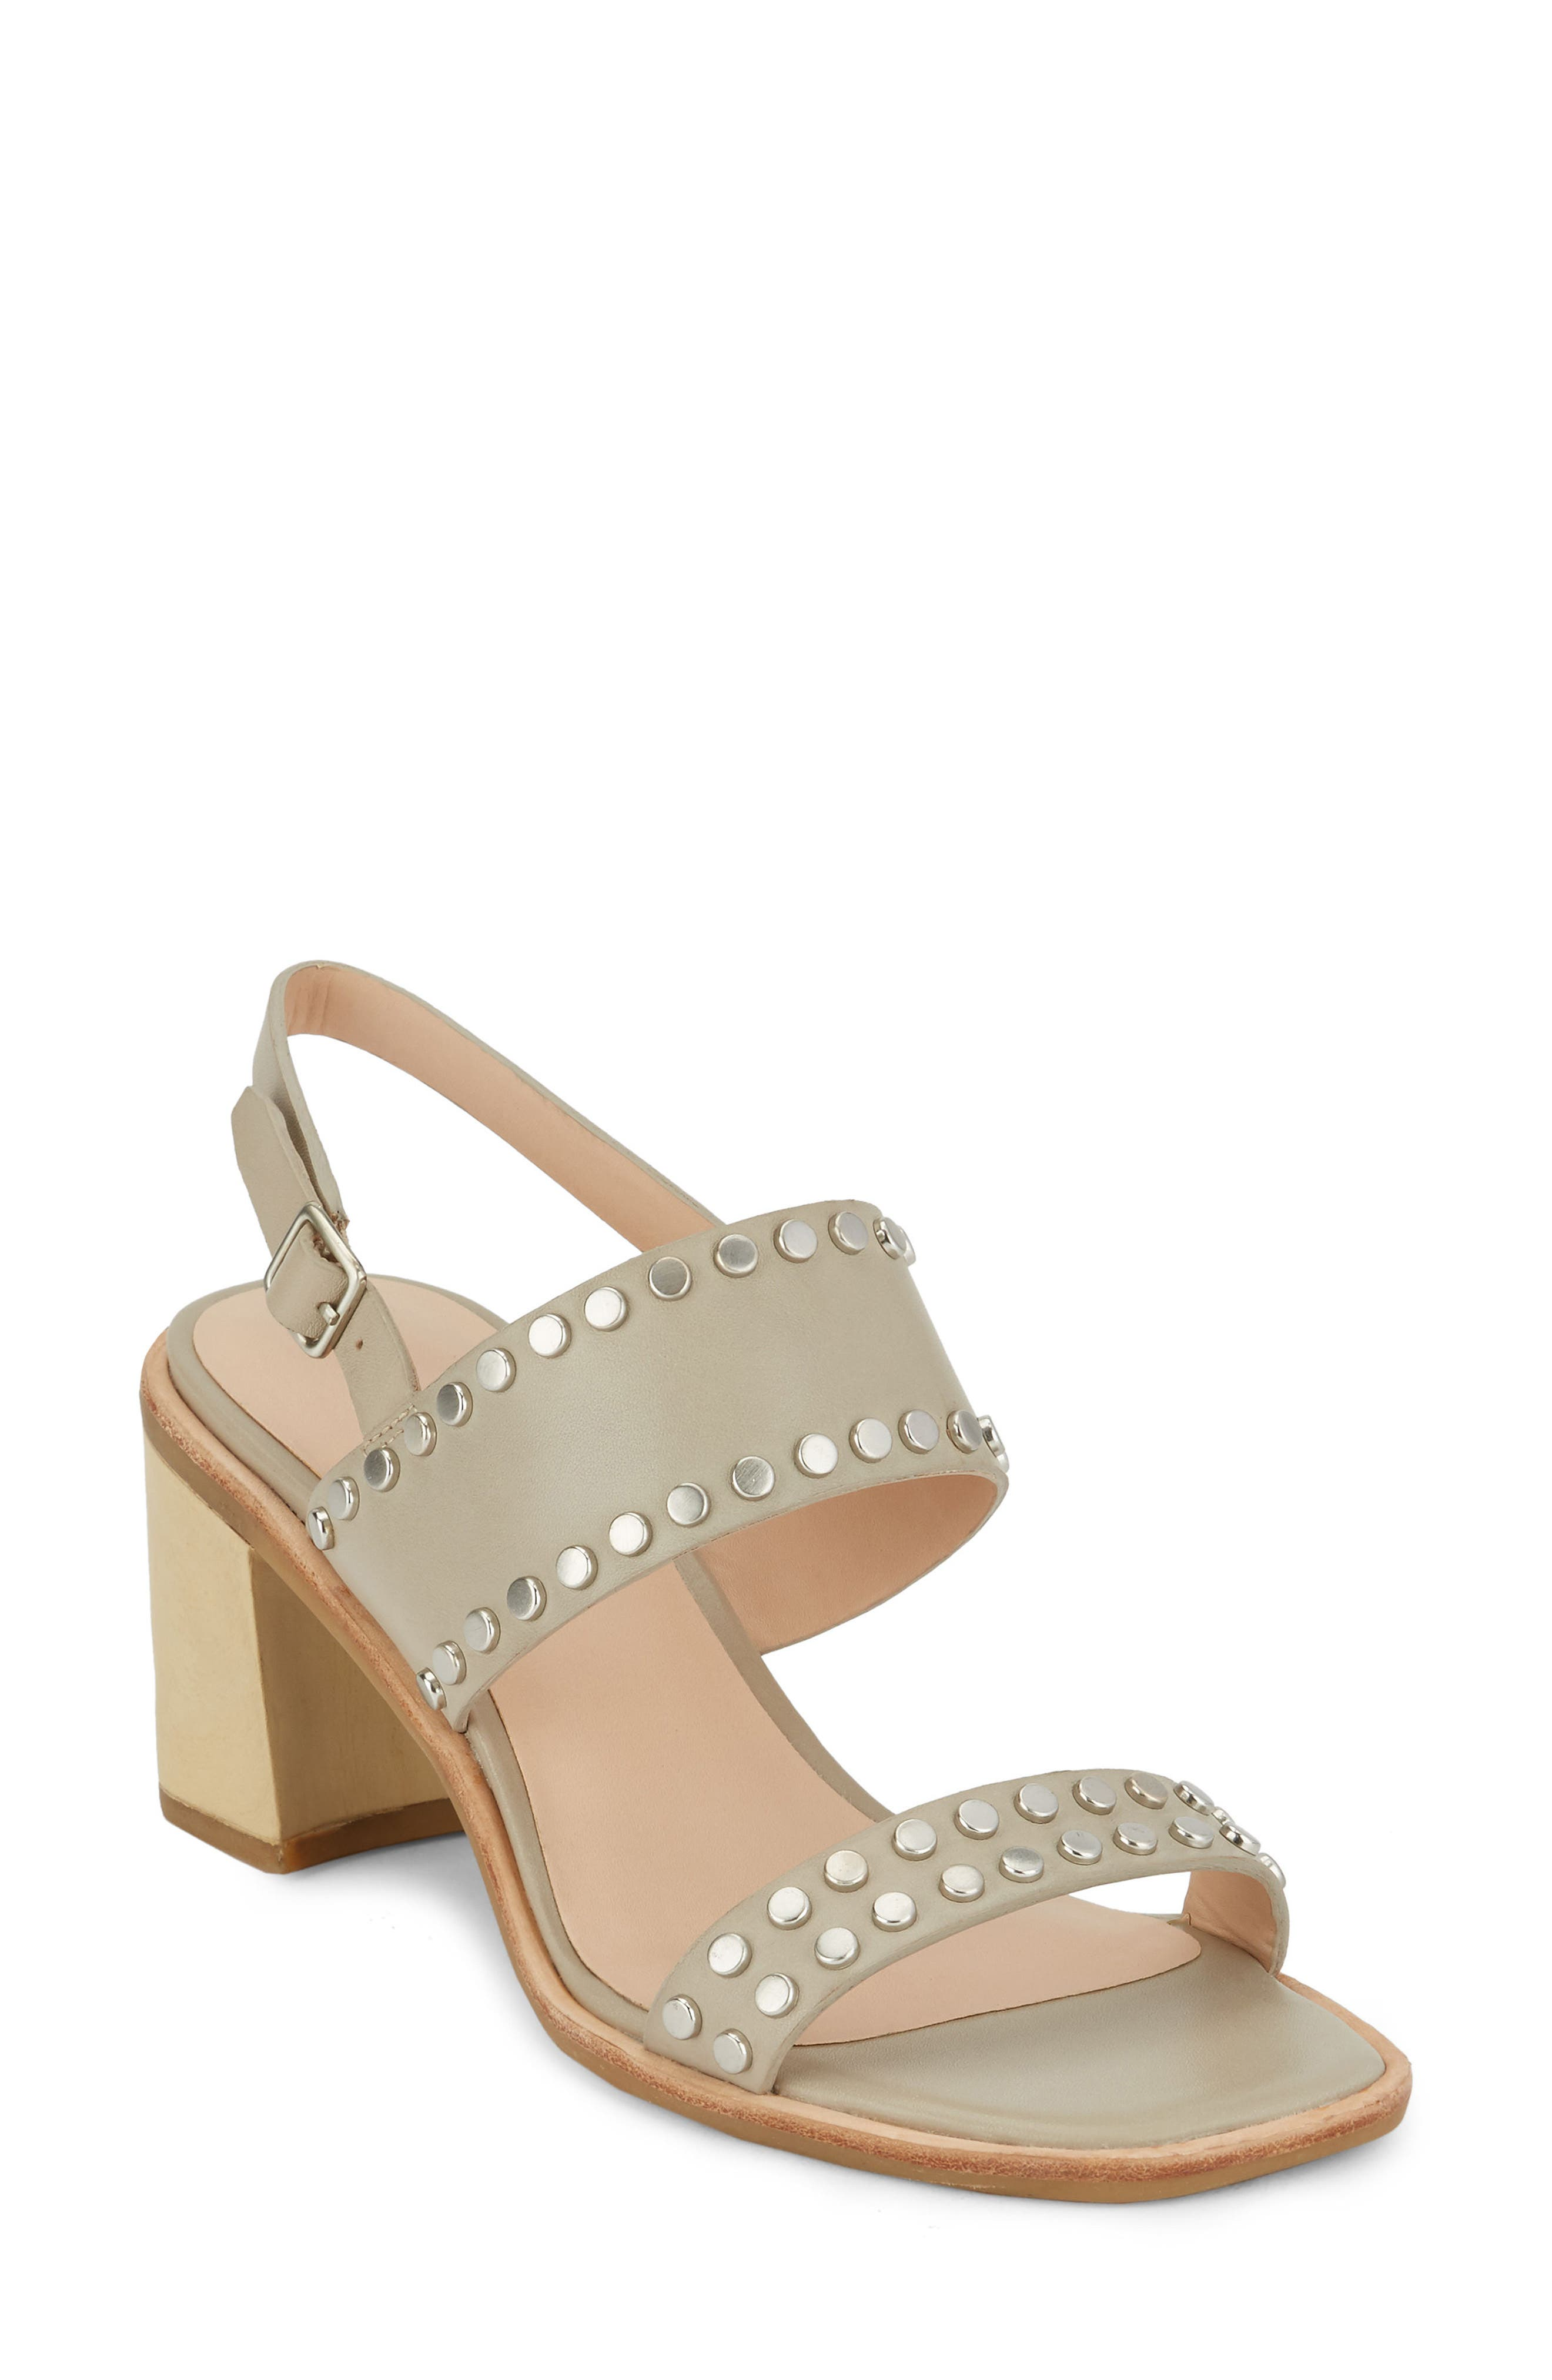 Rachel Block Heel Sandal,                             Main thumbnail 2, color,